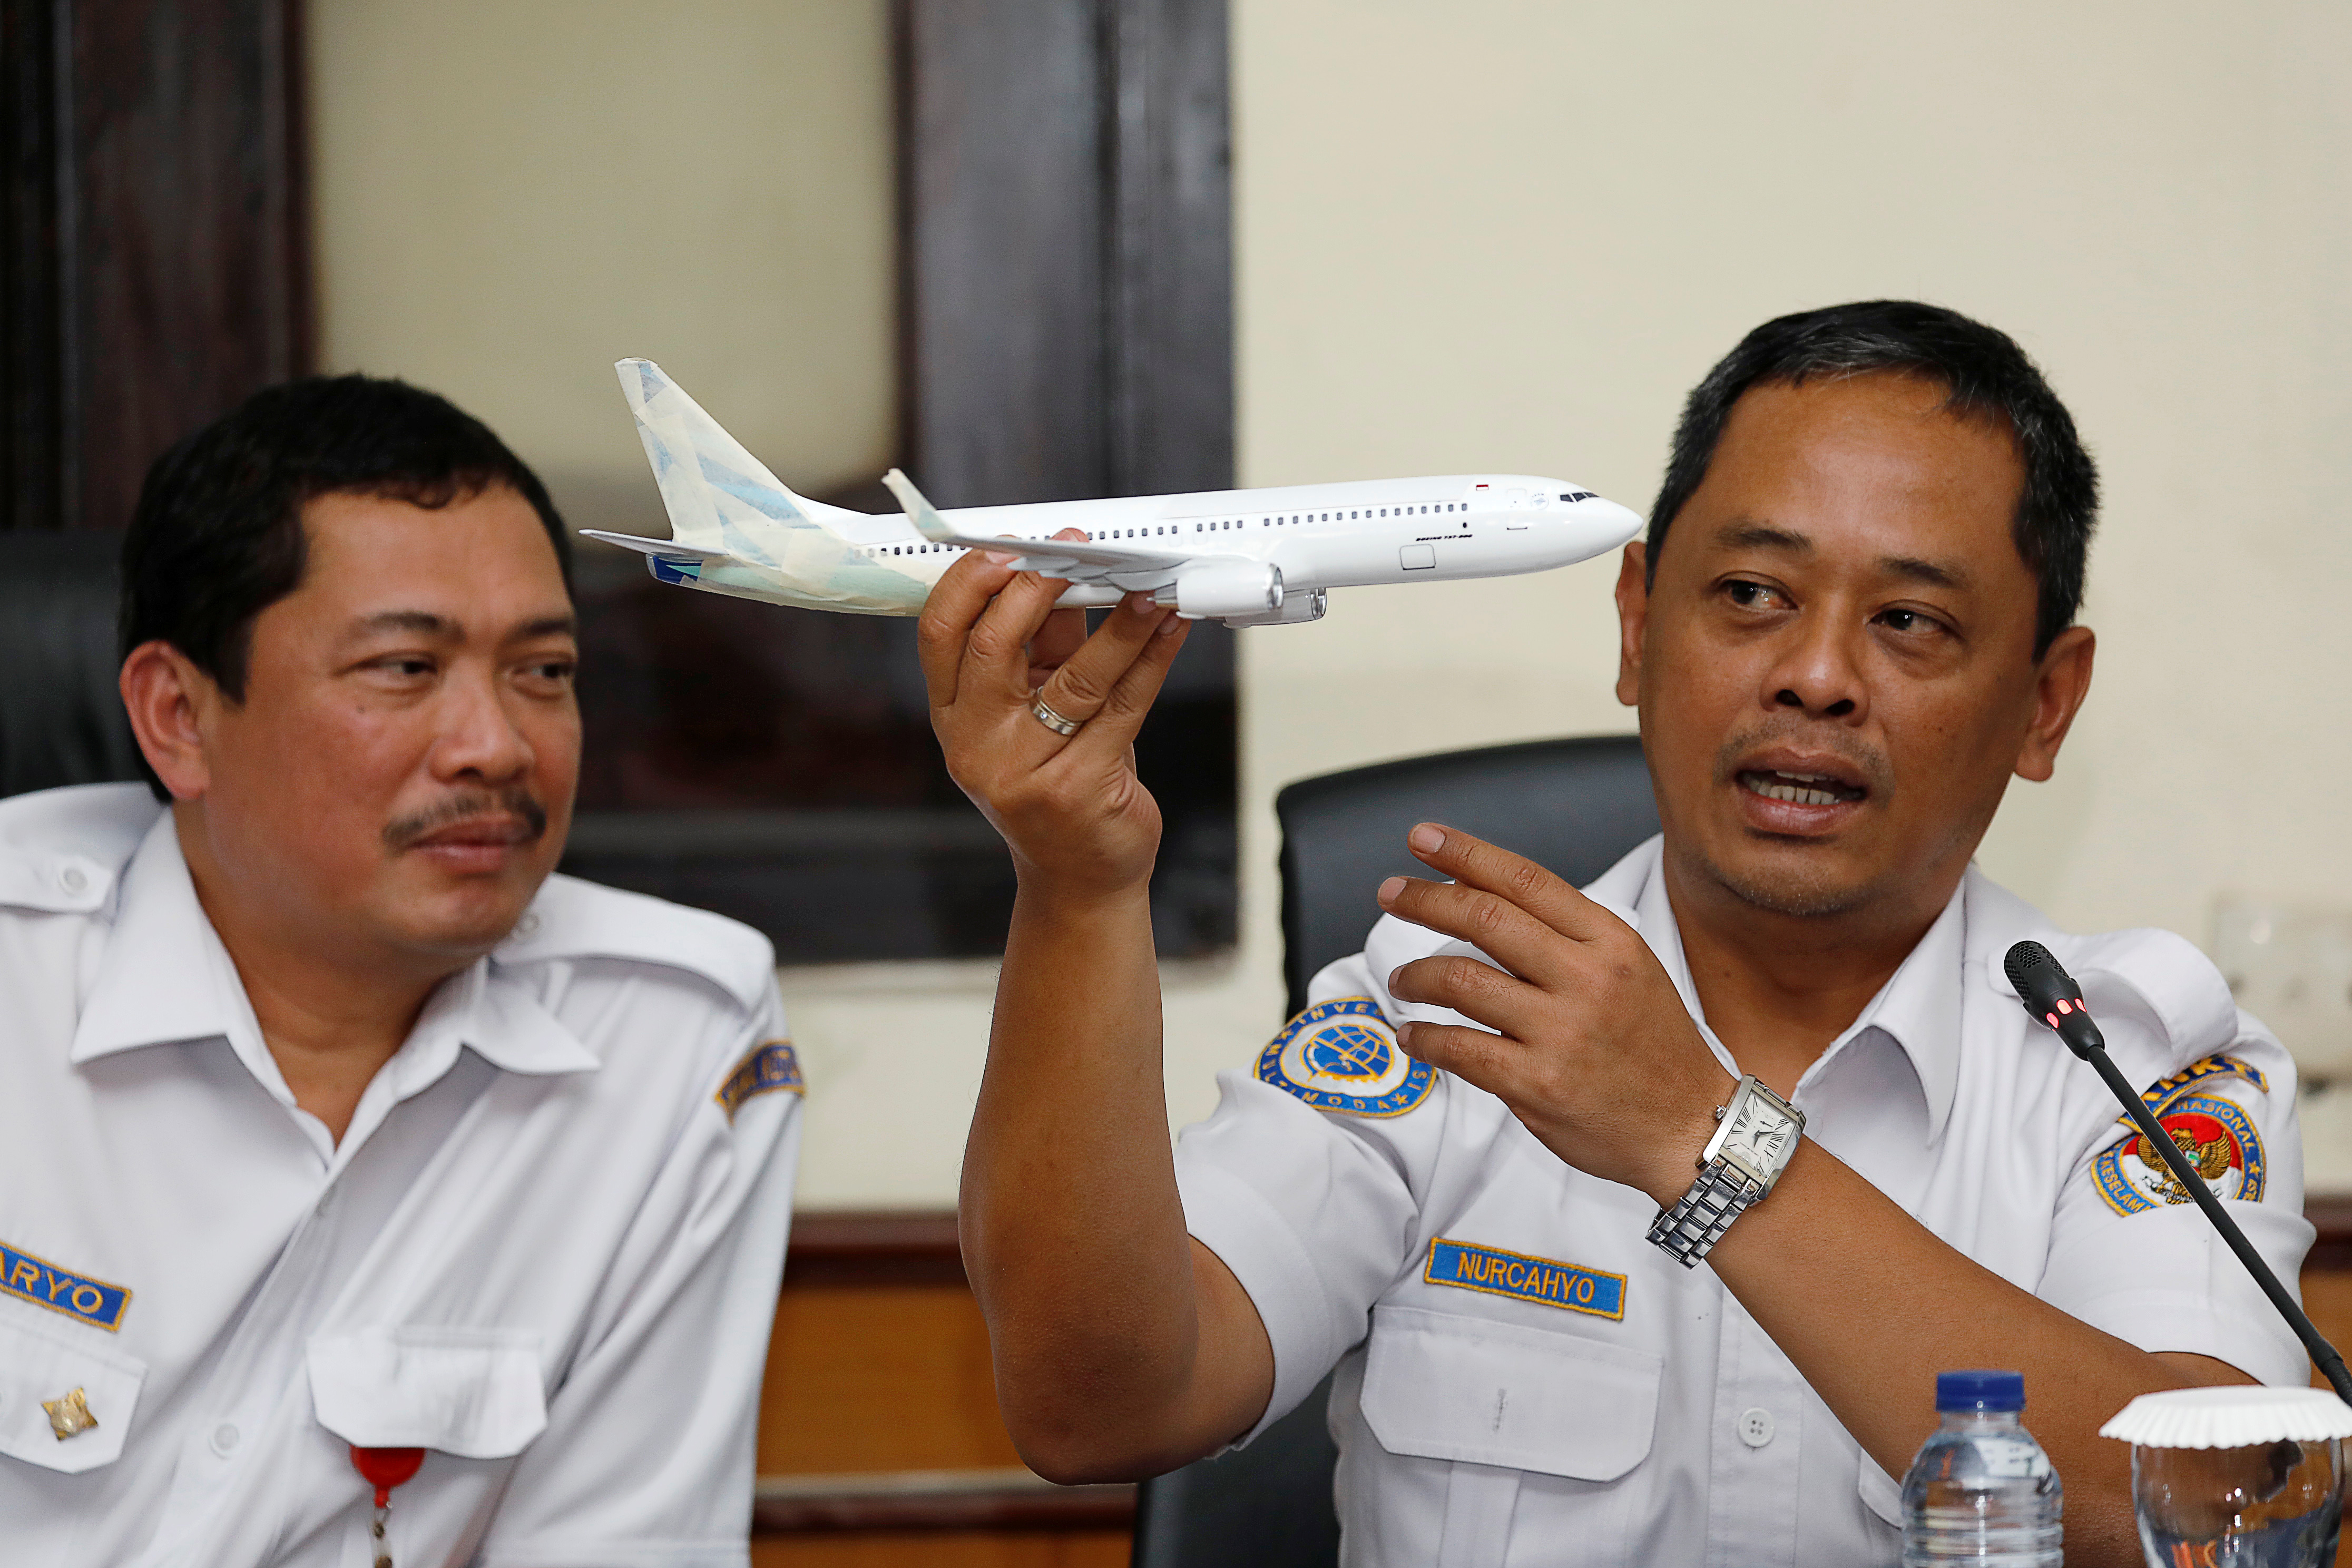 Indonesia's National Transportation Safety Committee (KNKT) sub-committee head for air accidents, Nurcahyo Utomo, holds a model airplane while speaking next to deputy chief of KNKT Haryo Satmiko during a news conference on its investigation into a Lion Air plane crash last month, in Jakarta, Indonesia November 28, 2018. REUTERS/Darren Whiteside